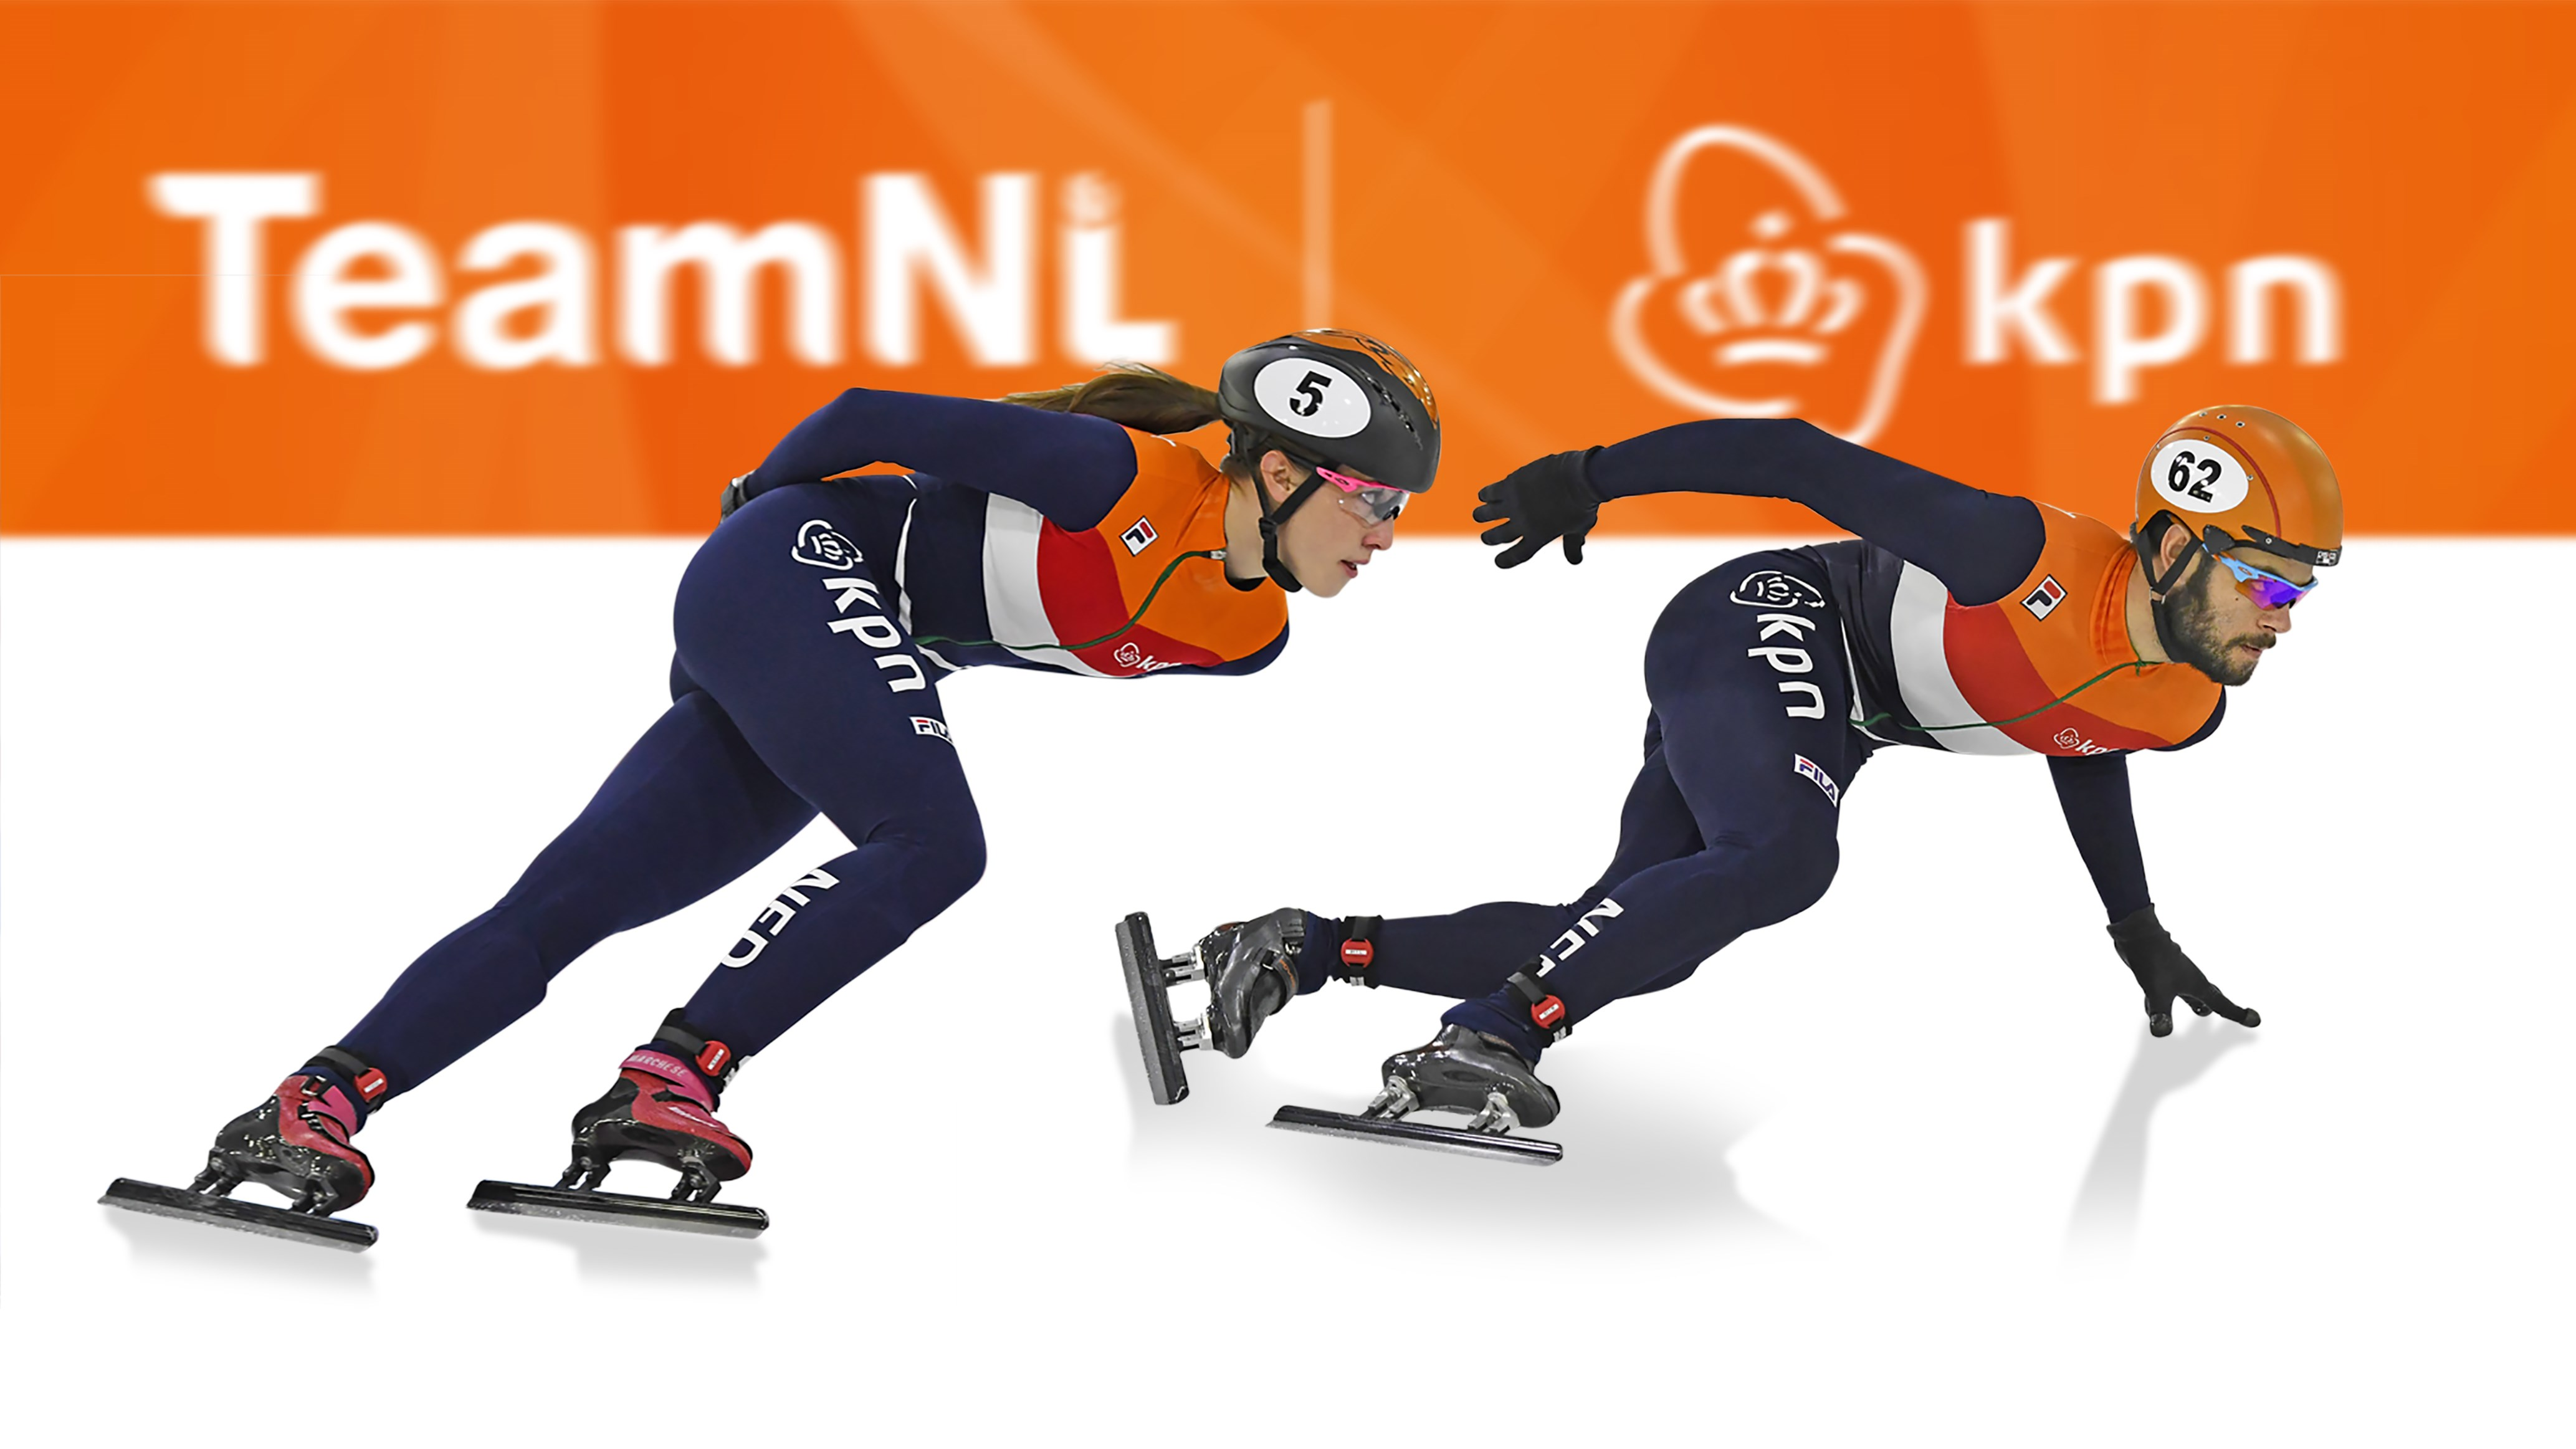 KPN partner TeamNL